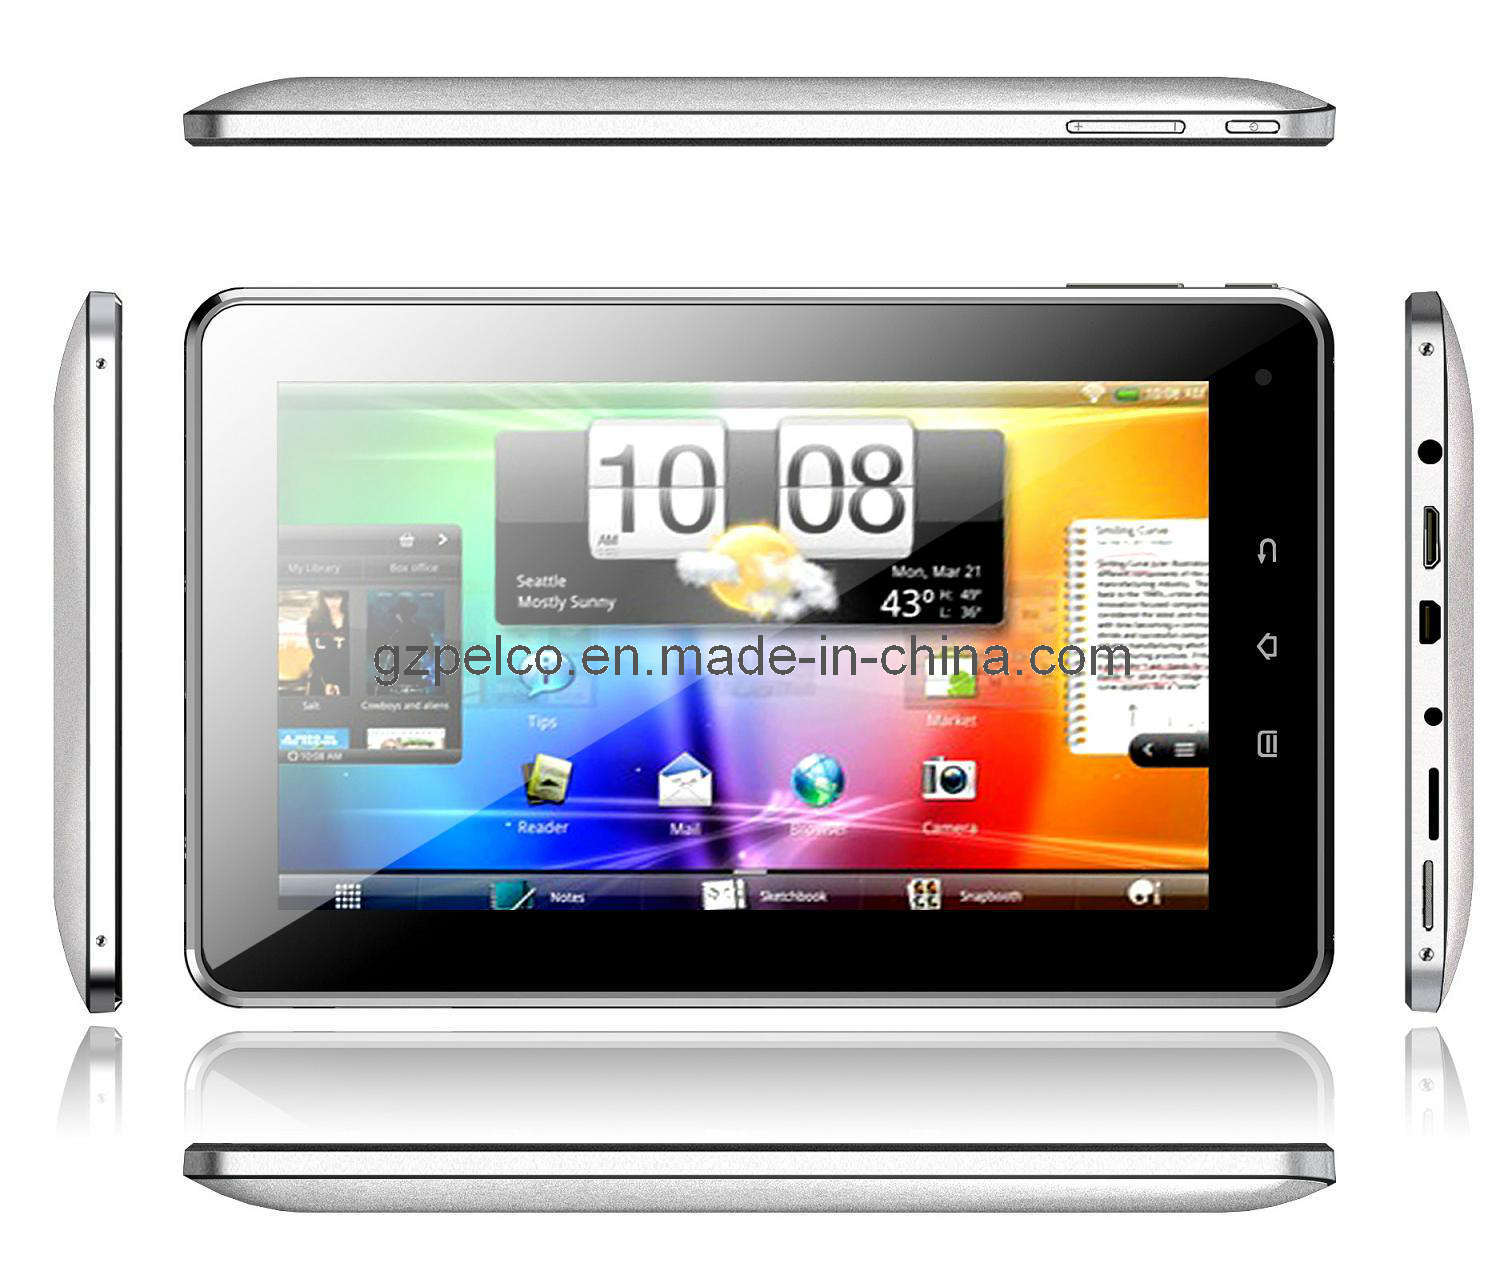 7inch Google Android 4.0 Tablet PC